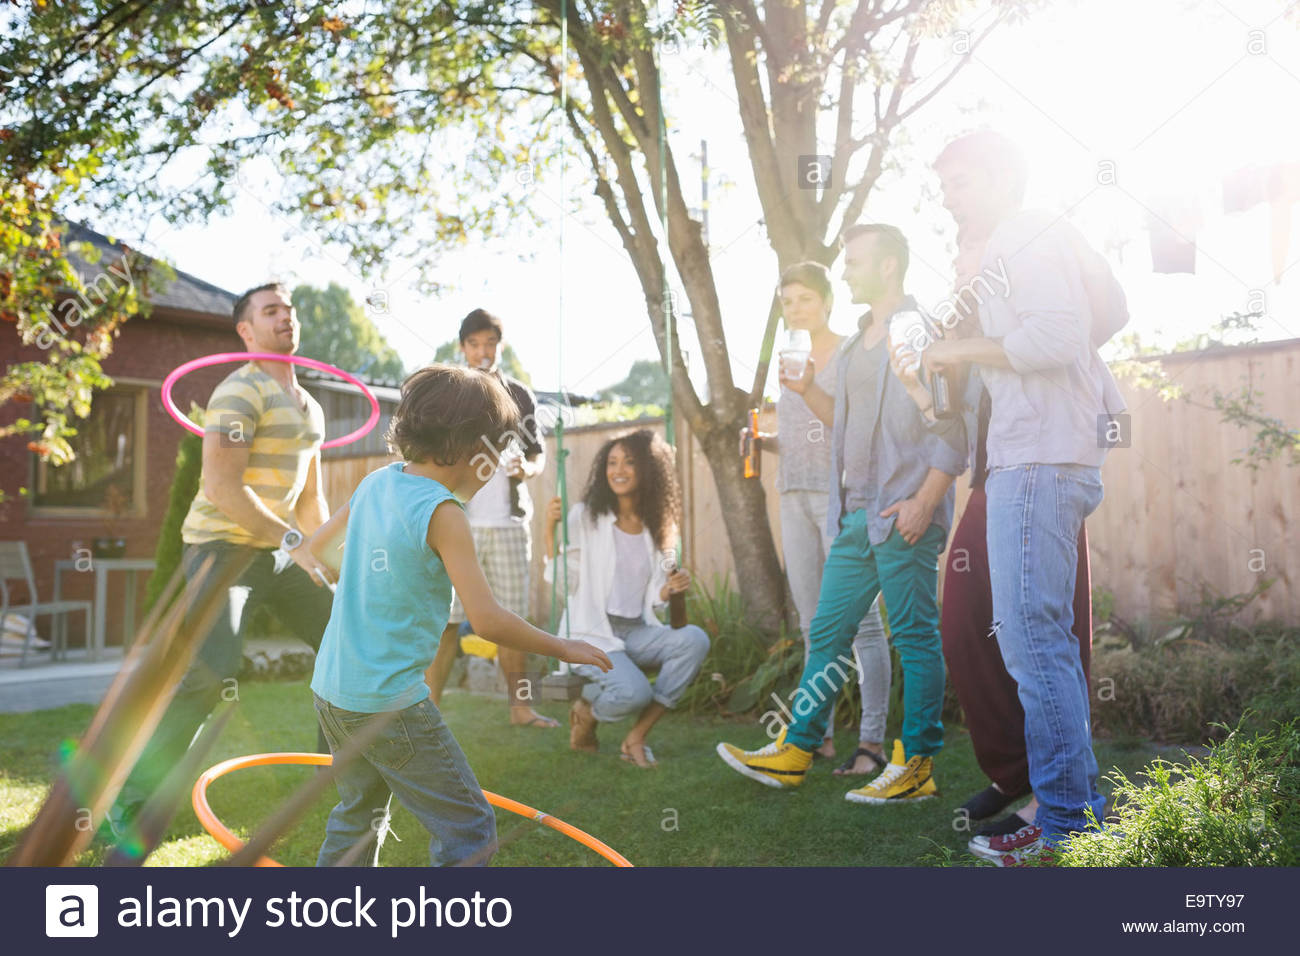 Friends playing with plastic hoops in sunny backyard - Stock Image